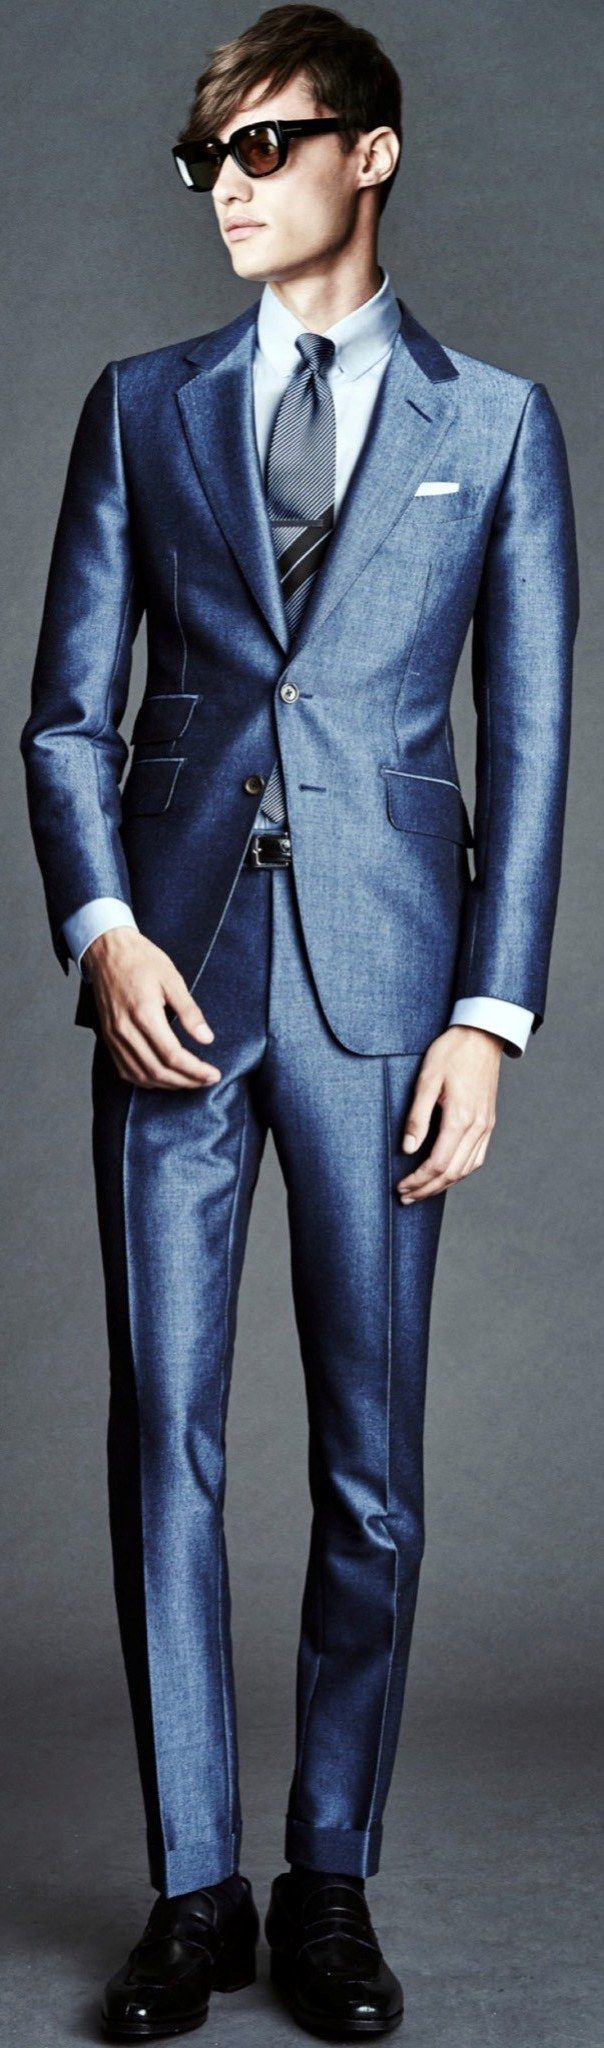 The 9752 best Tom Ford images on Pinterest | Tom shoes, Toms and Tom ...